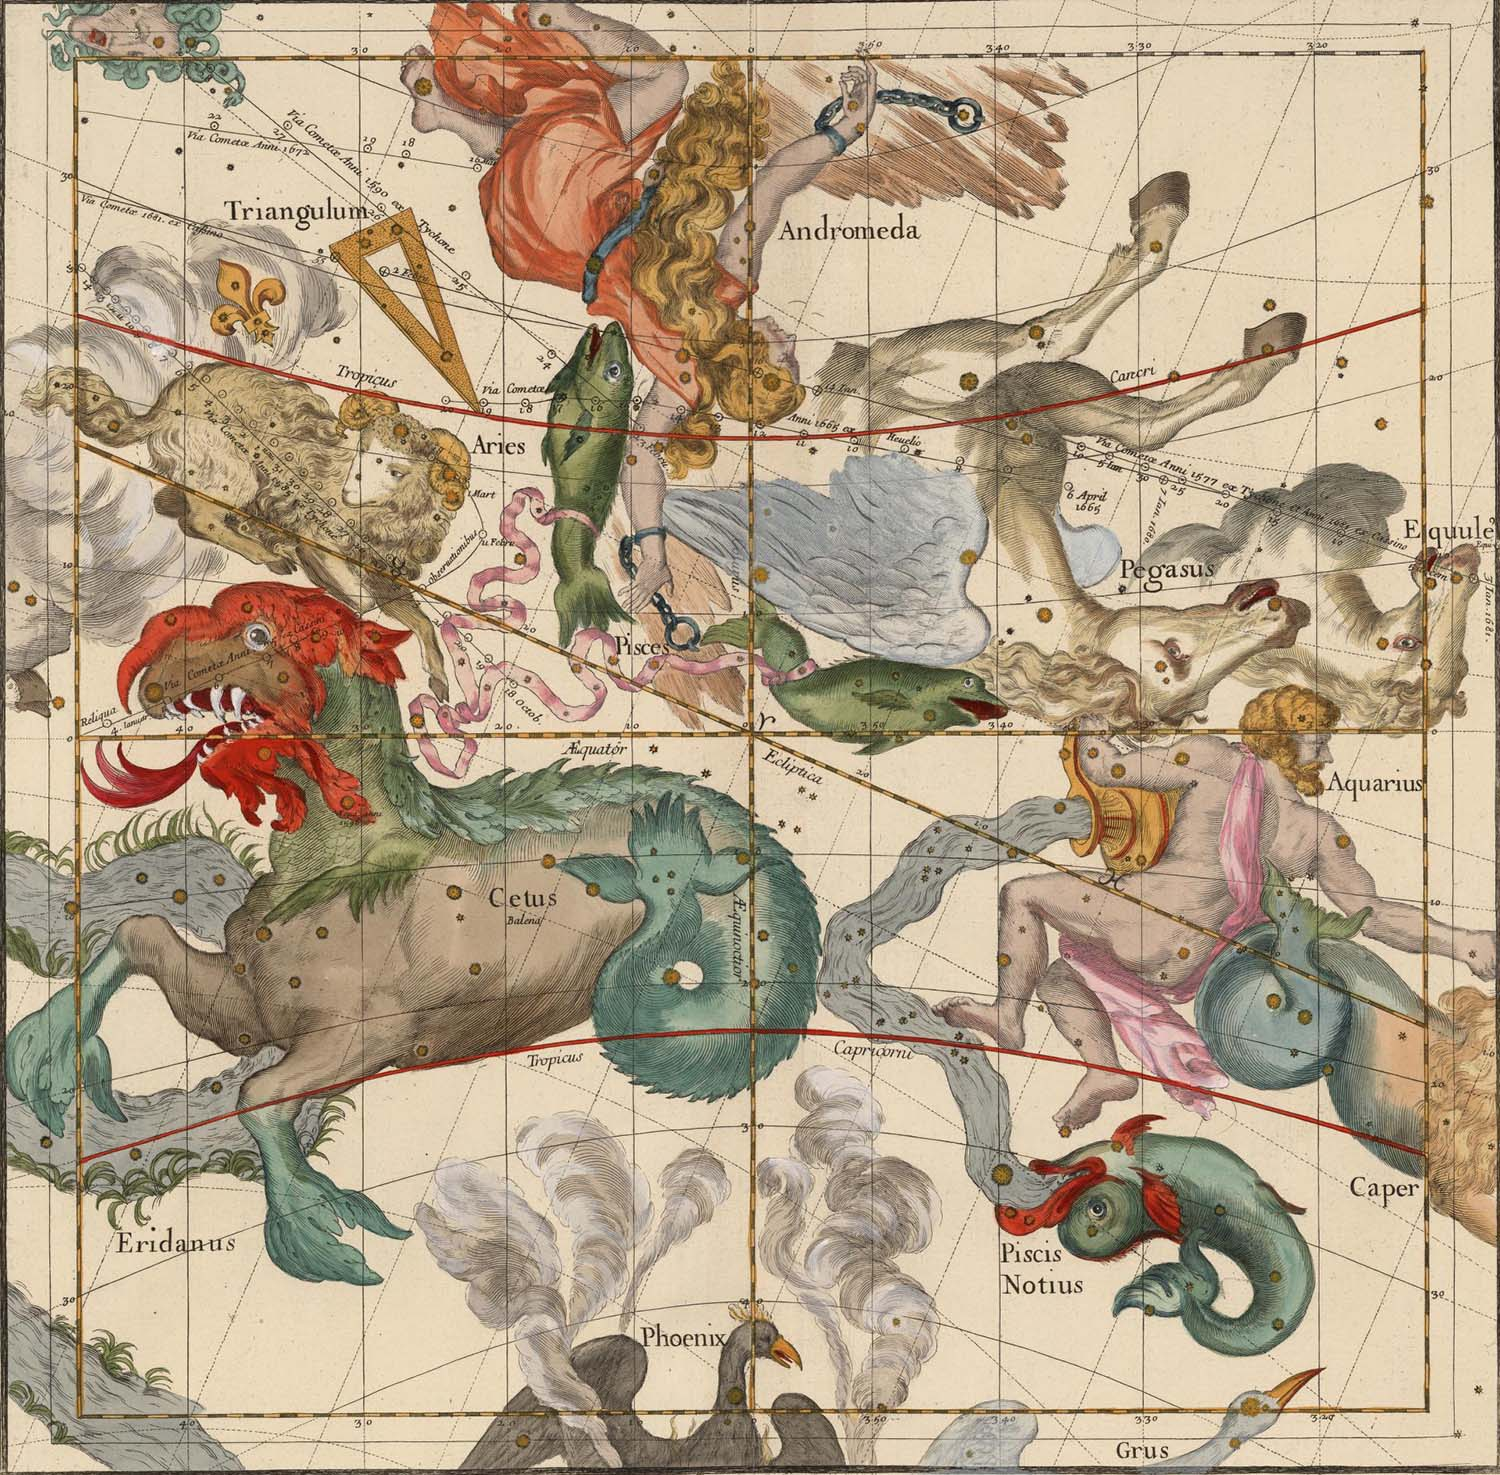 David Rumsey Historical Map Collection | The Collection on